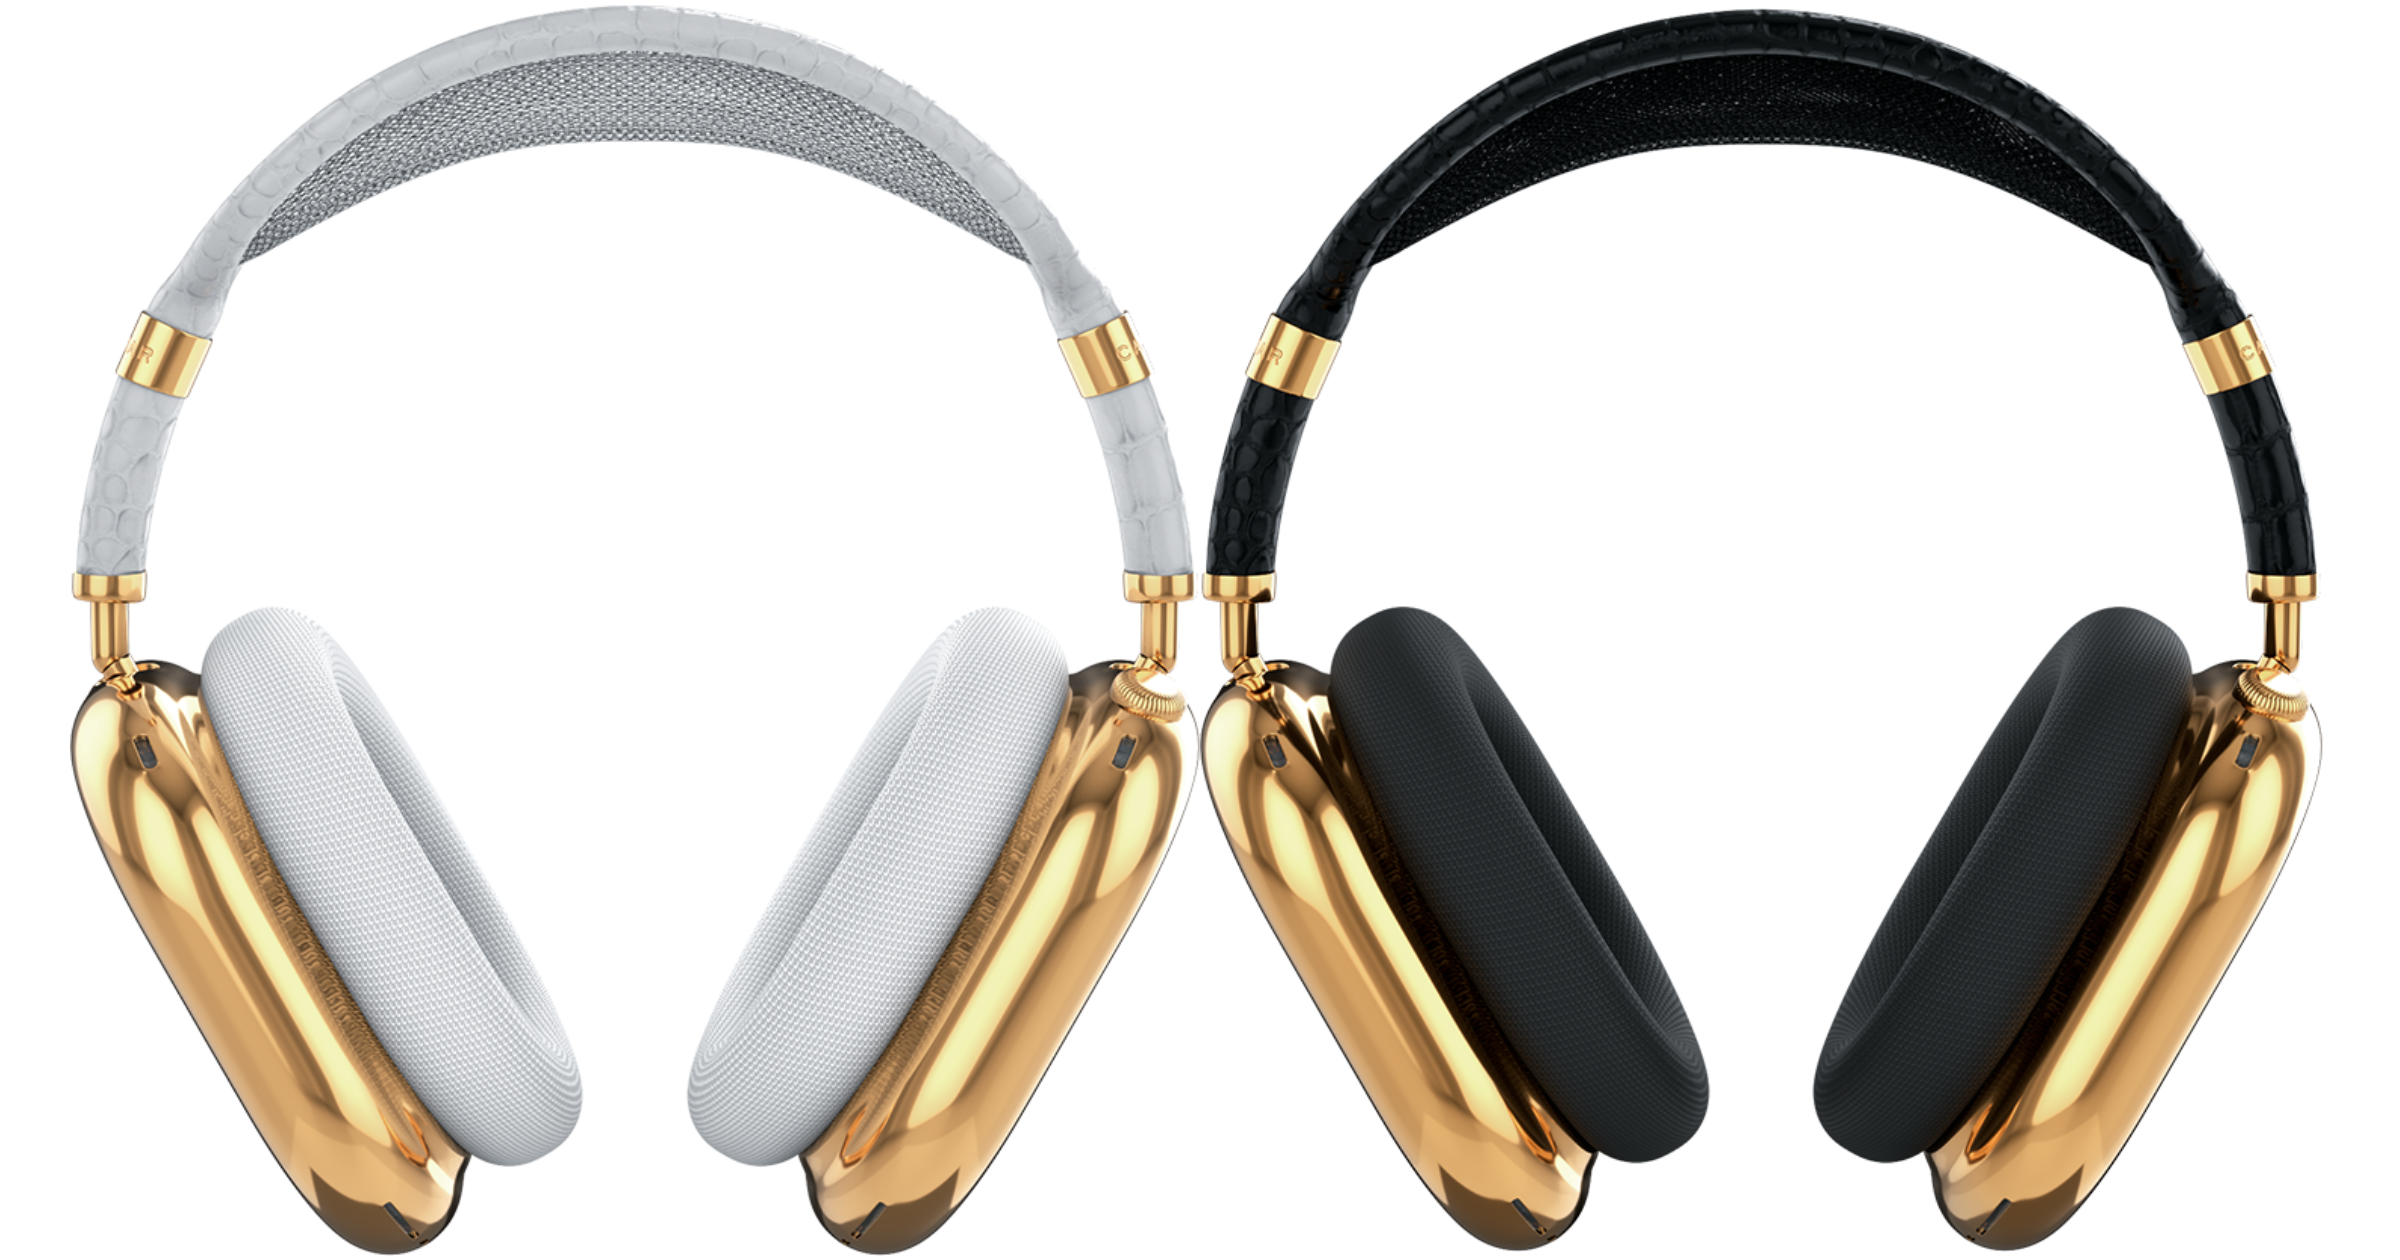 Now Caviar Has Gold AirPods Max Headphones on Sale